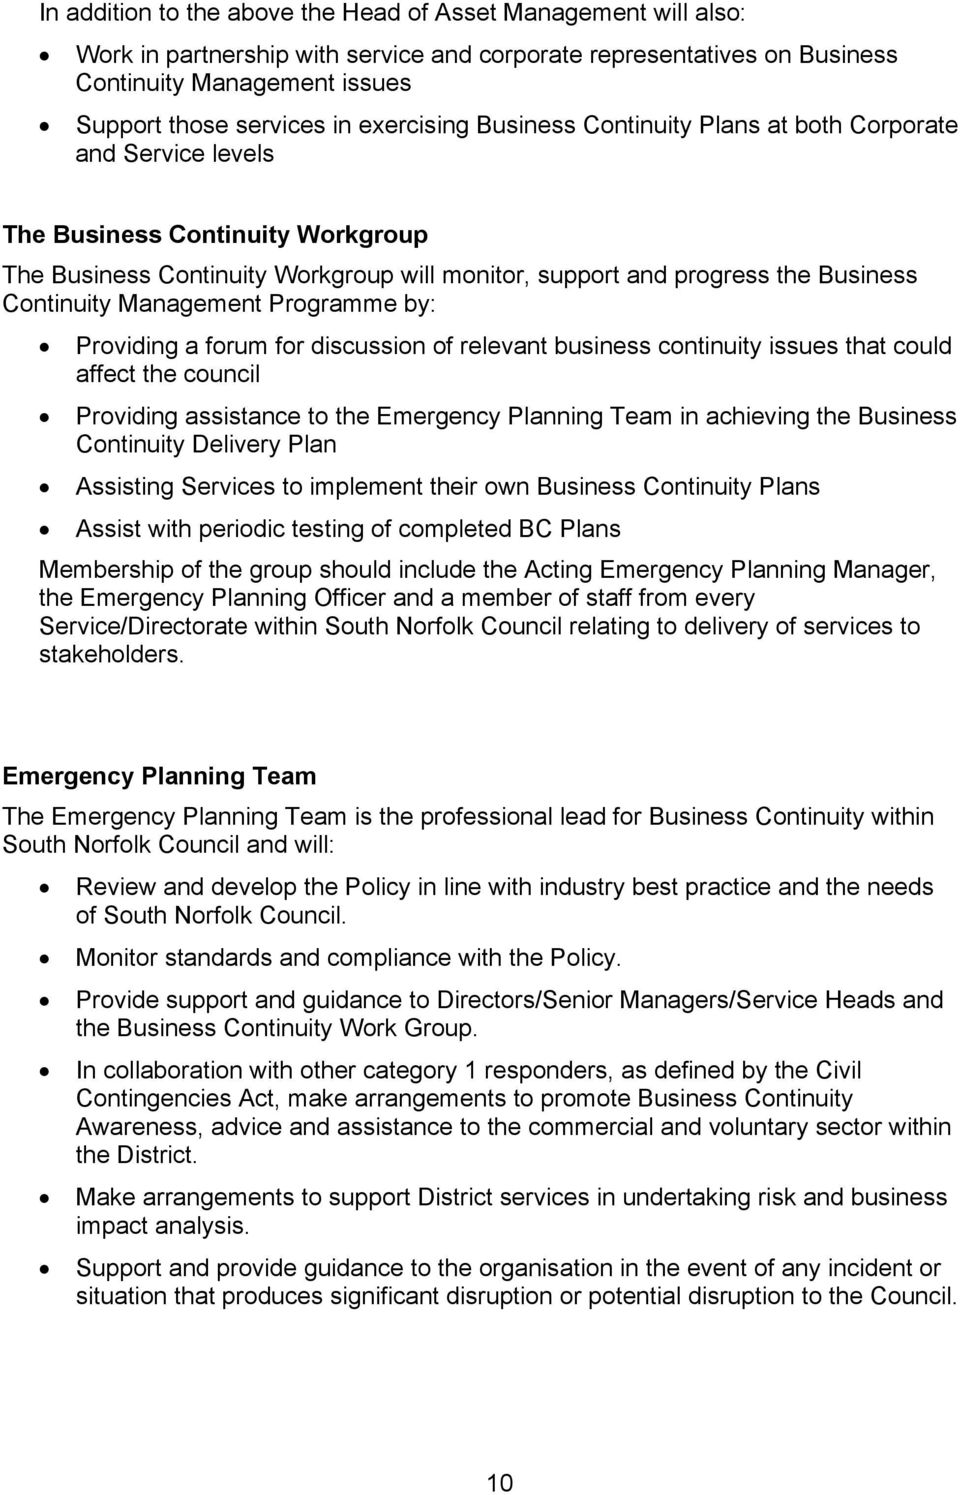 Continuity Management Programme by: Providing a forum for discussion of relevant business continuity issues that could affect the council Providing assistance to the Emergency Planning Team in